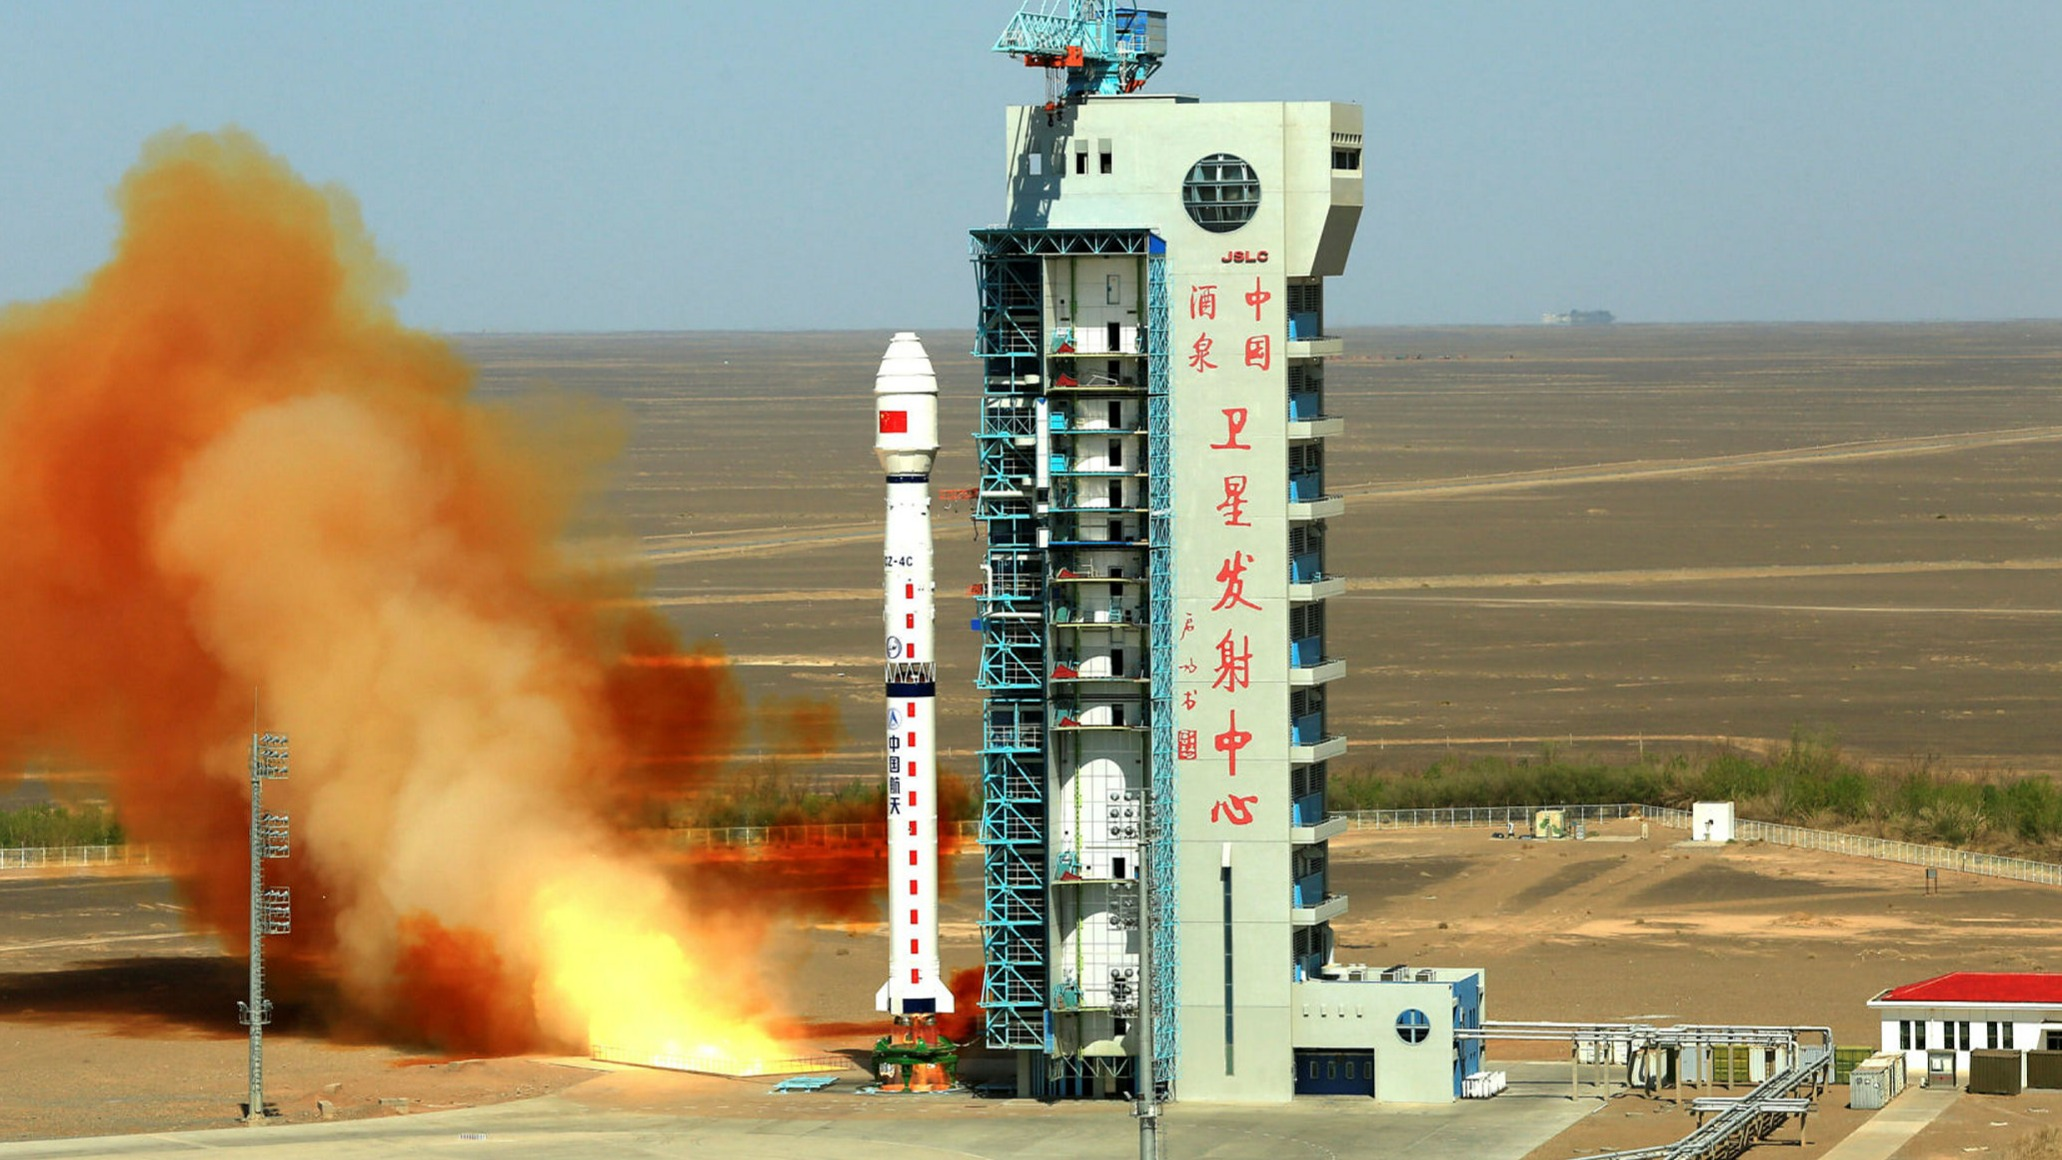 ft.com - The editorial board - China's ambitions create a new frontier in space